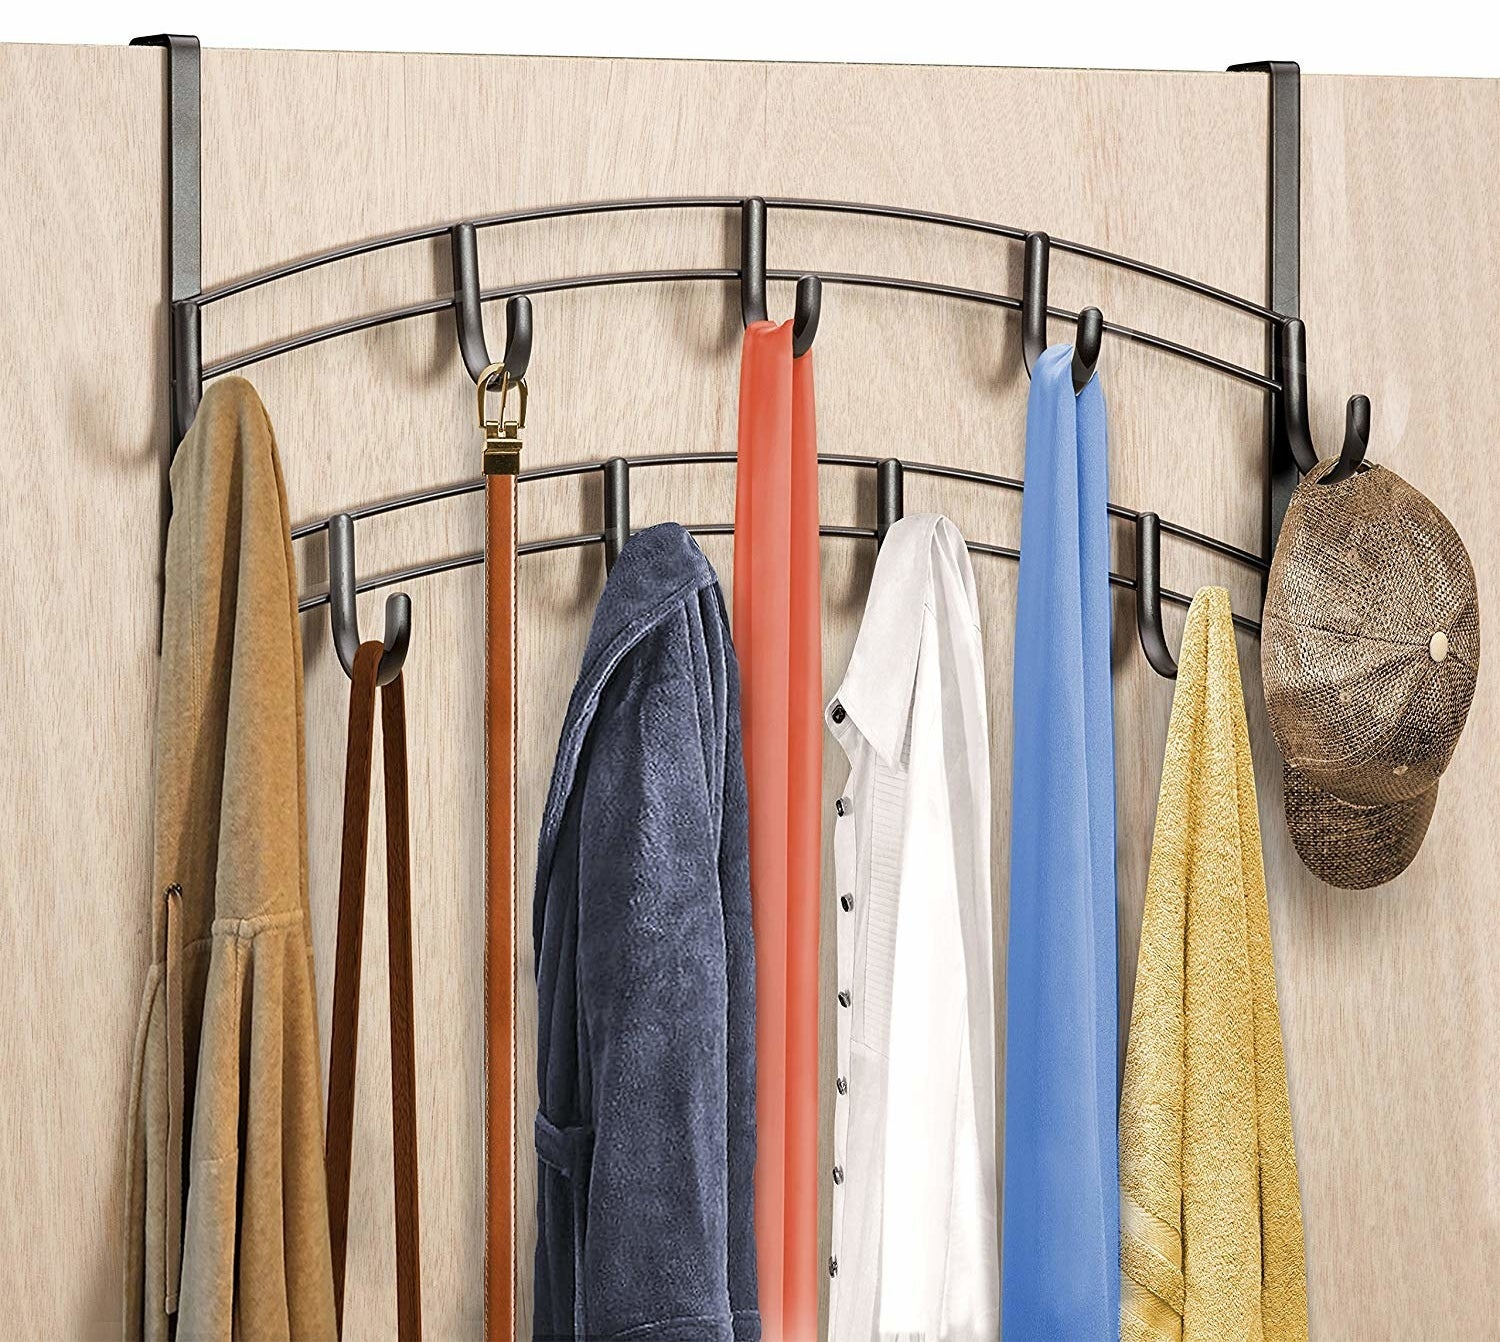 The nine-hook rack over the door with assorted sweatshirts, shirts, towels, and accessories hanging on it